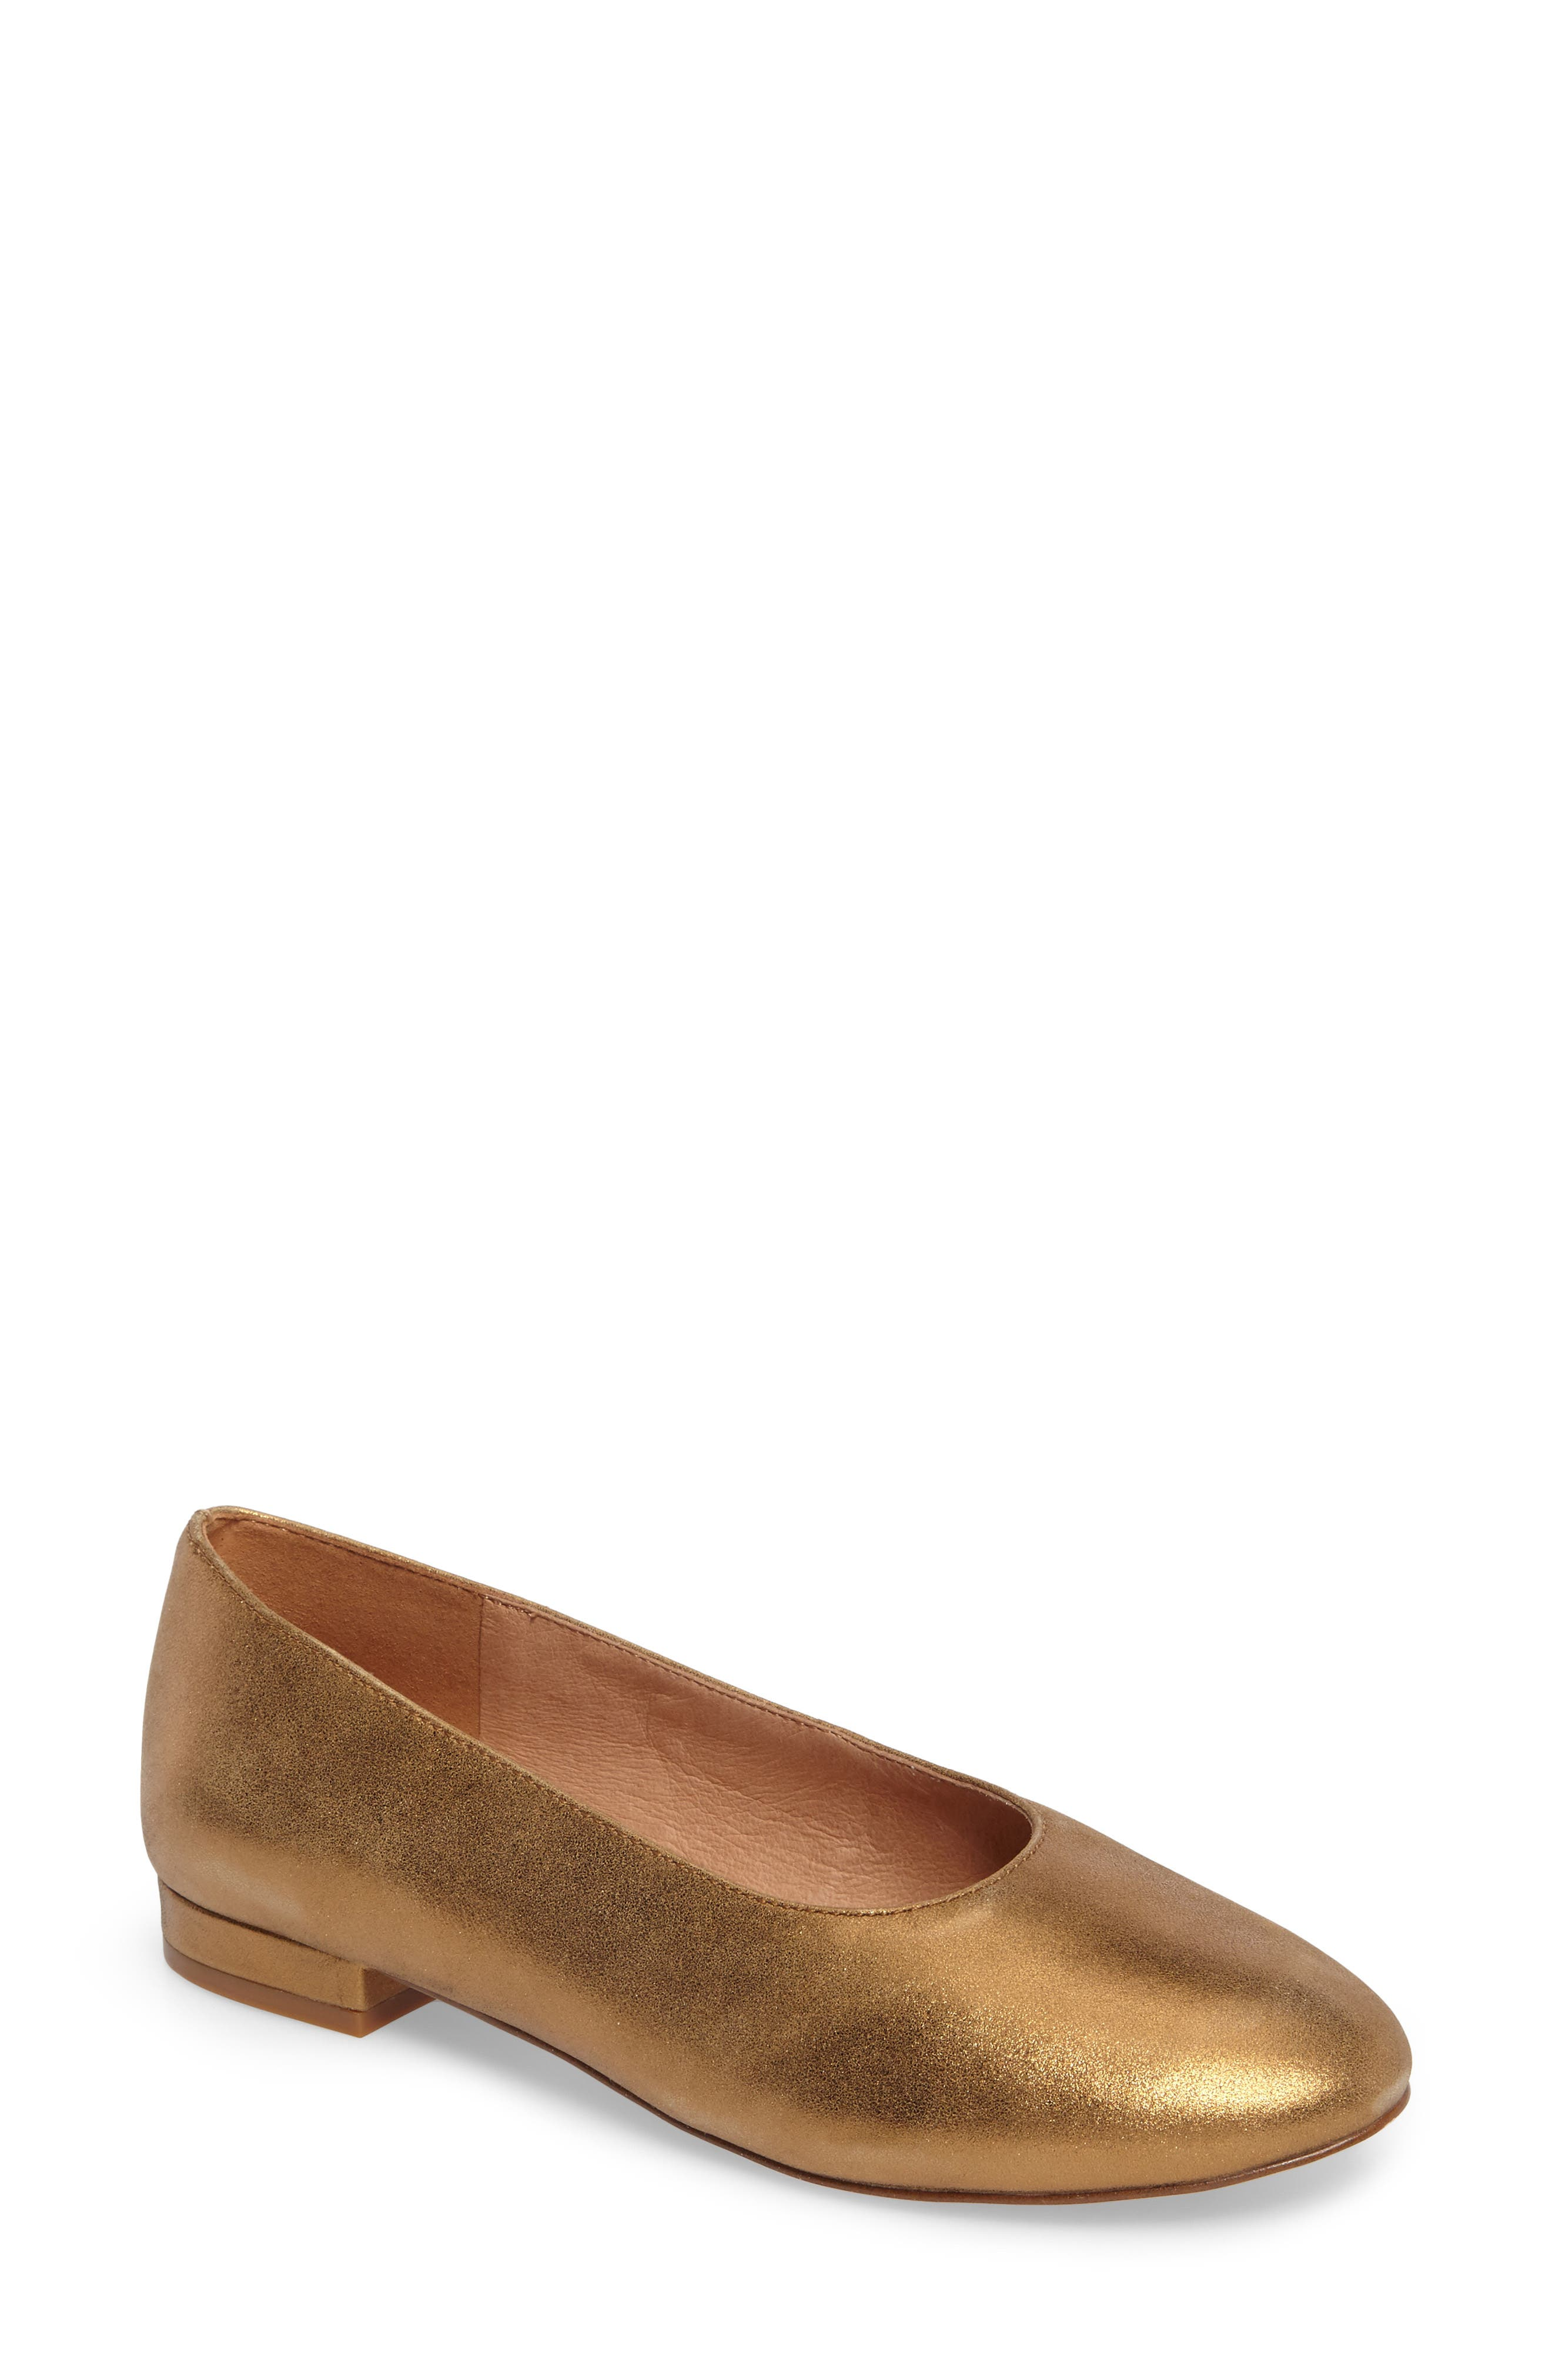 Alternate Image 1 Selected - Madewell Leia Ballet Flat (Women)